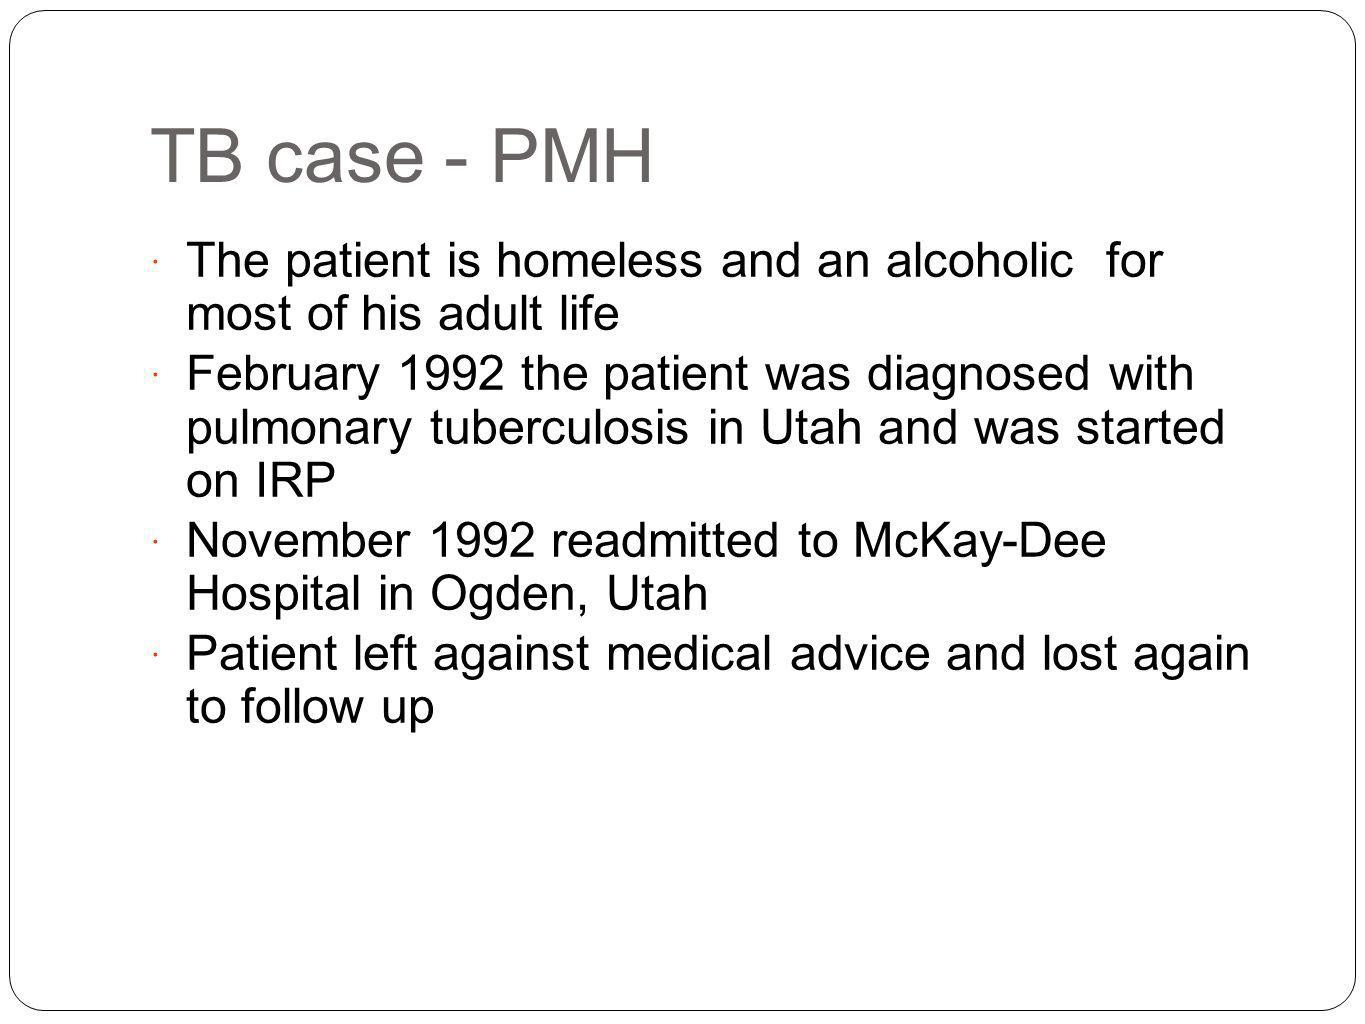 TB case - PMH The patient is homeless and an alcoholic for most of his adult life.